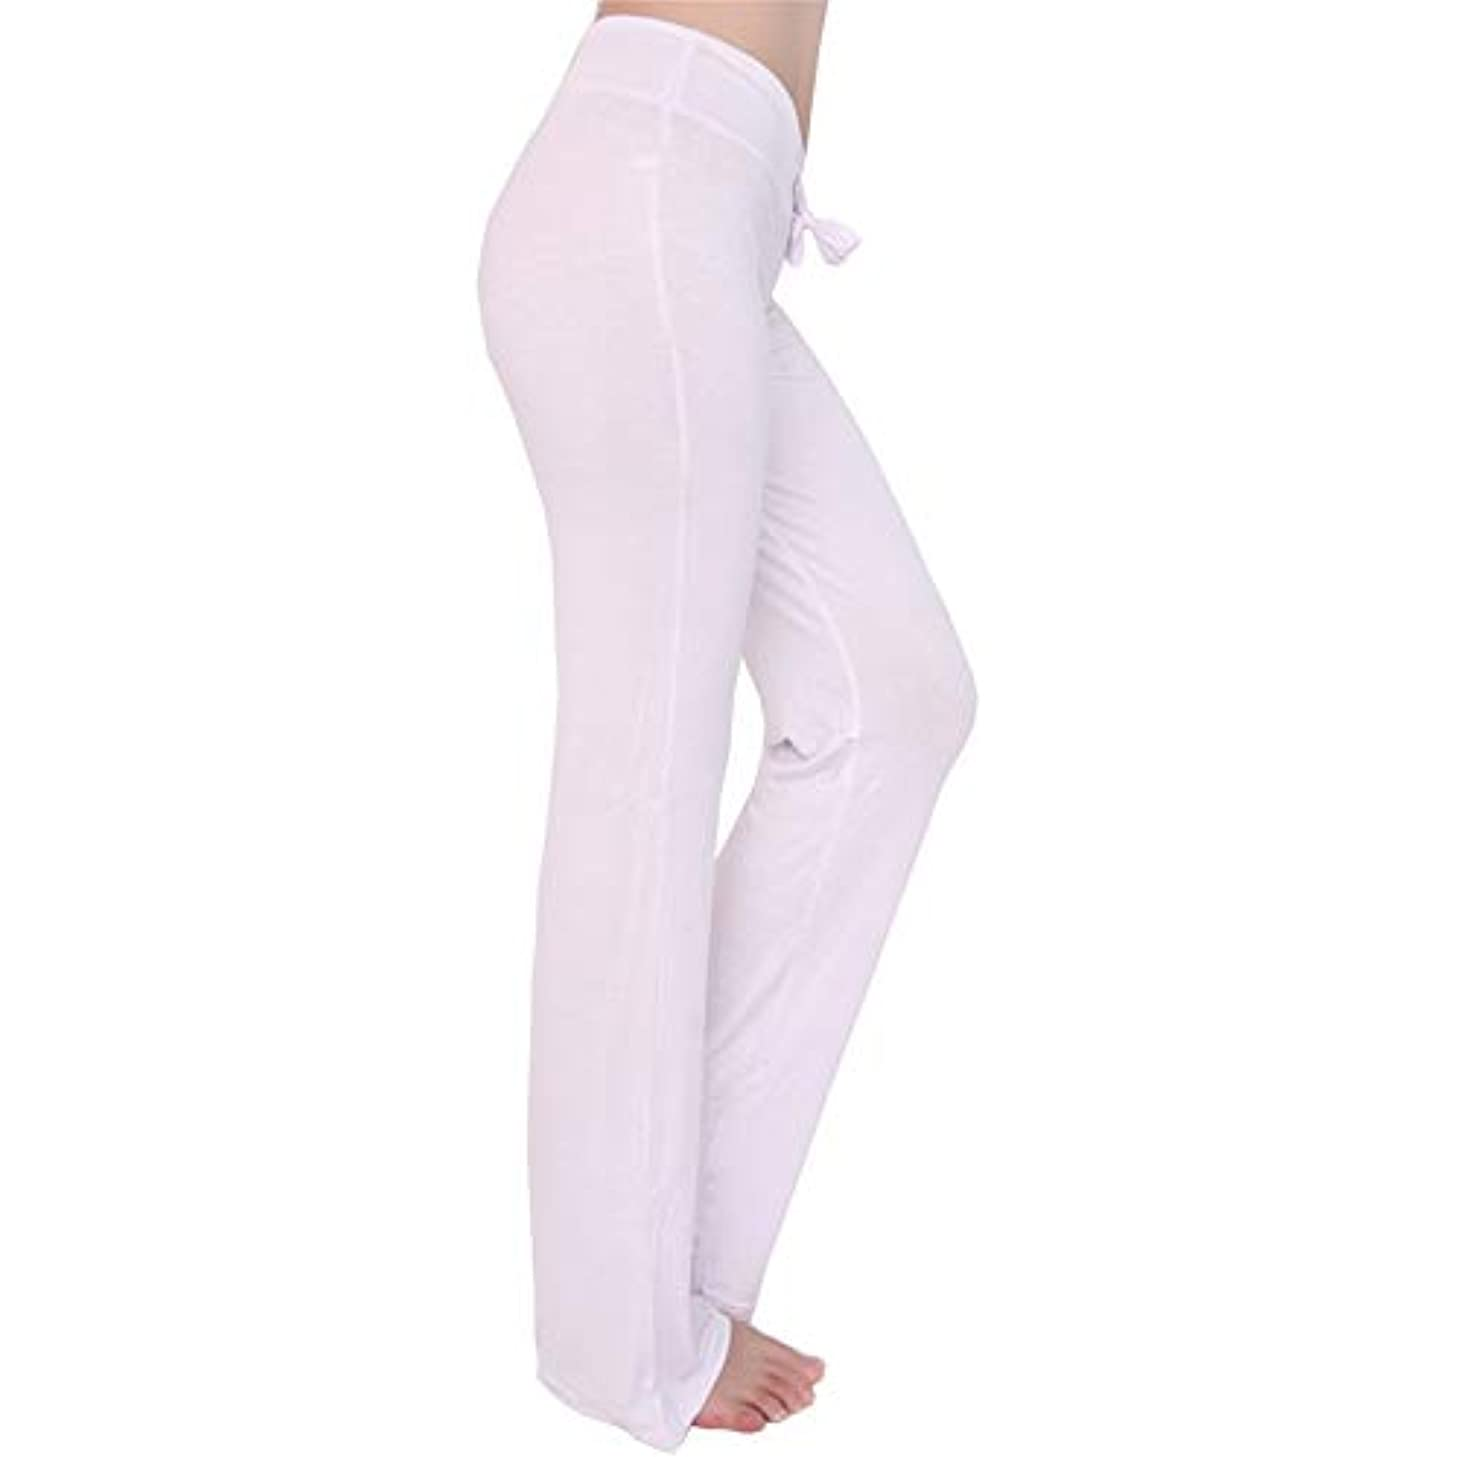 WALL CAT Sport Leggings Fitness Sportswear Women Gym Exercise Running Workout Pants